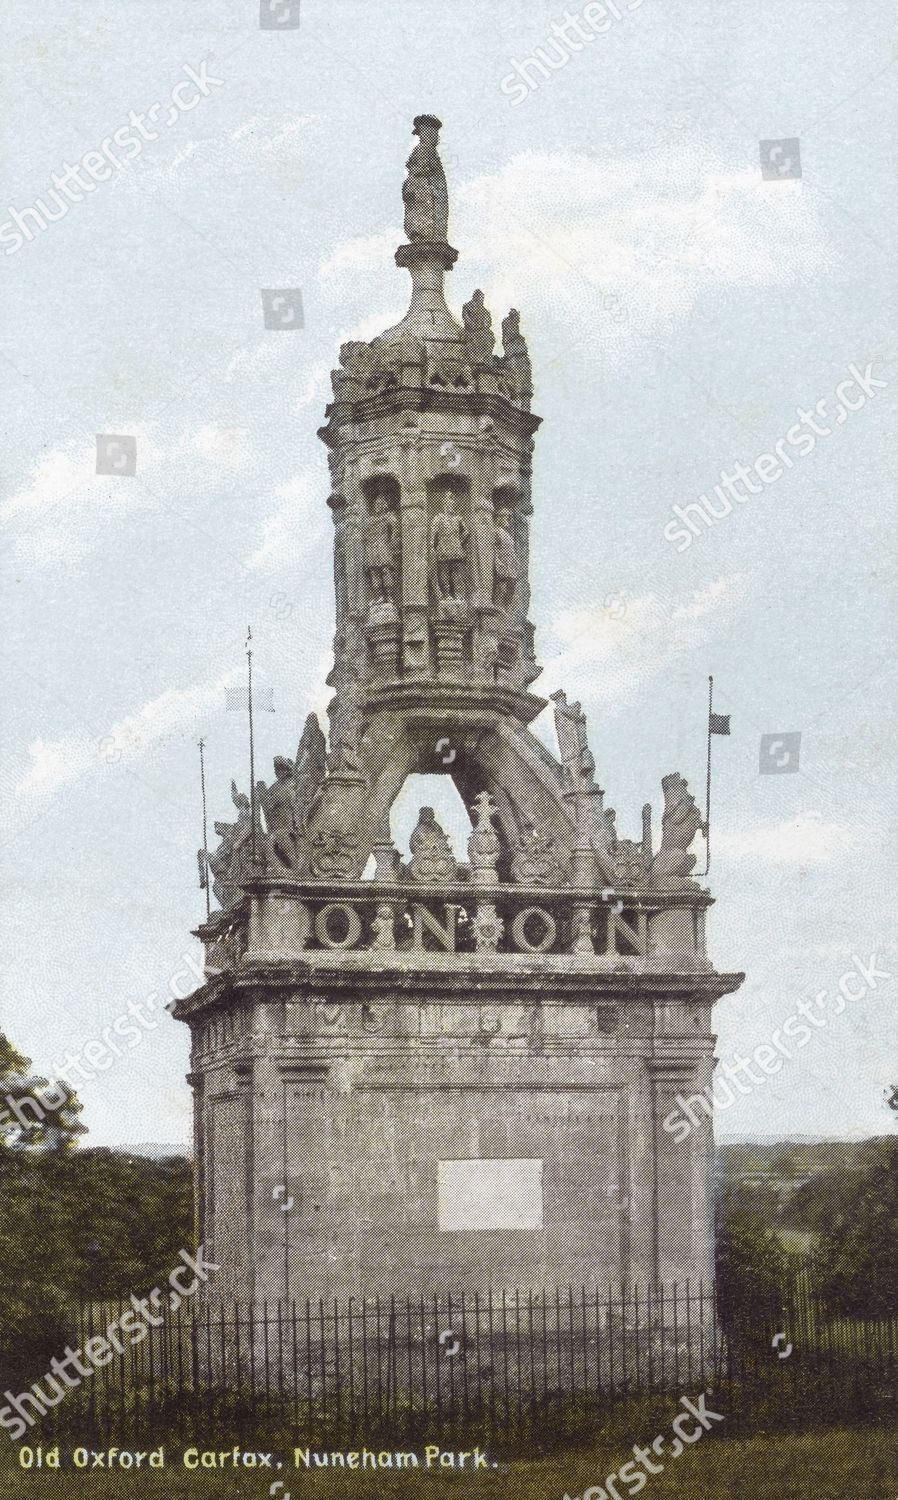 Old Oxford Carfax Nuneham Park Removed Oxford Editorial Stock Photo